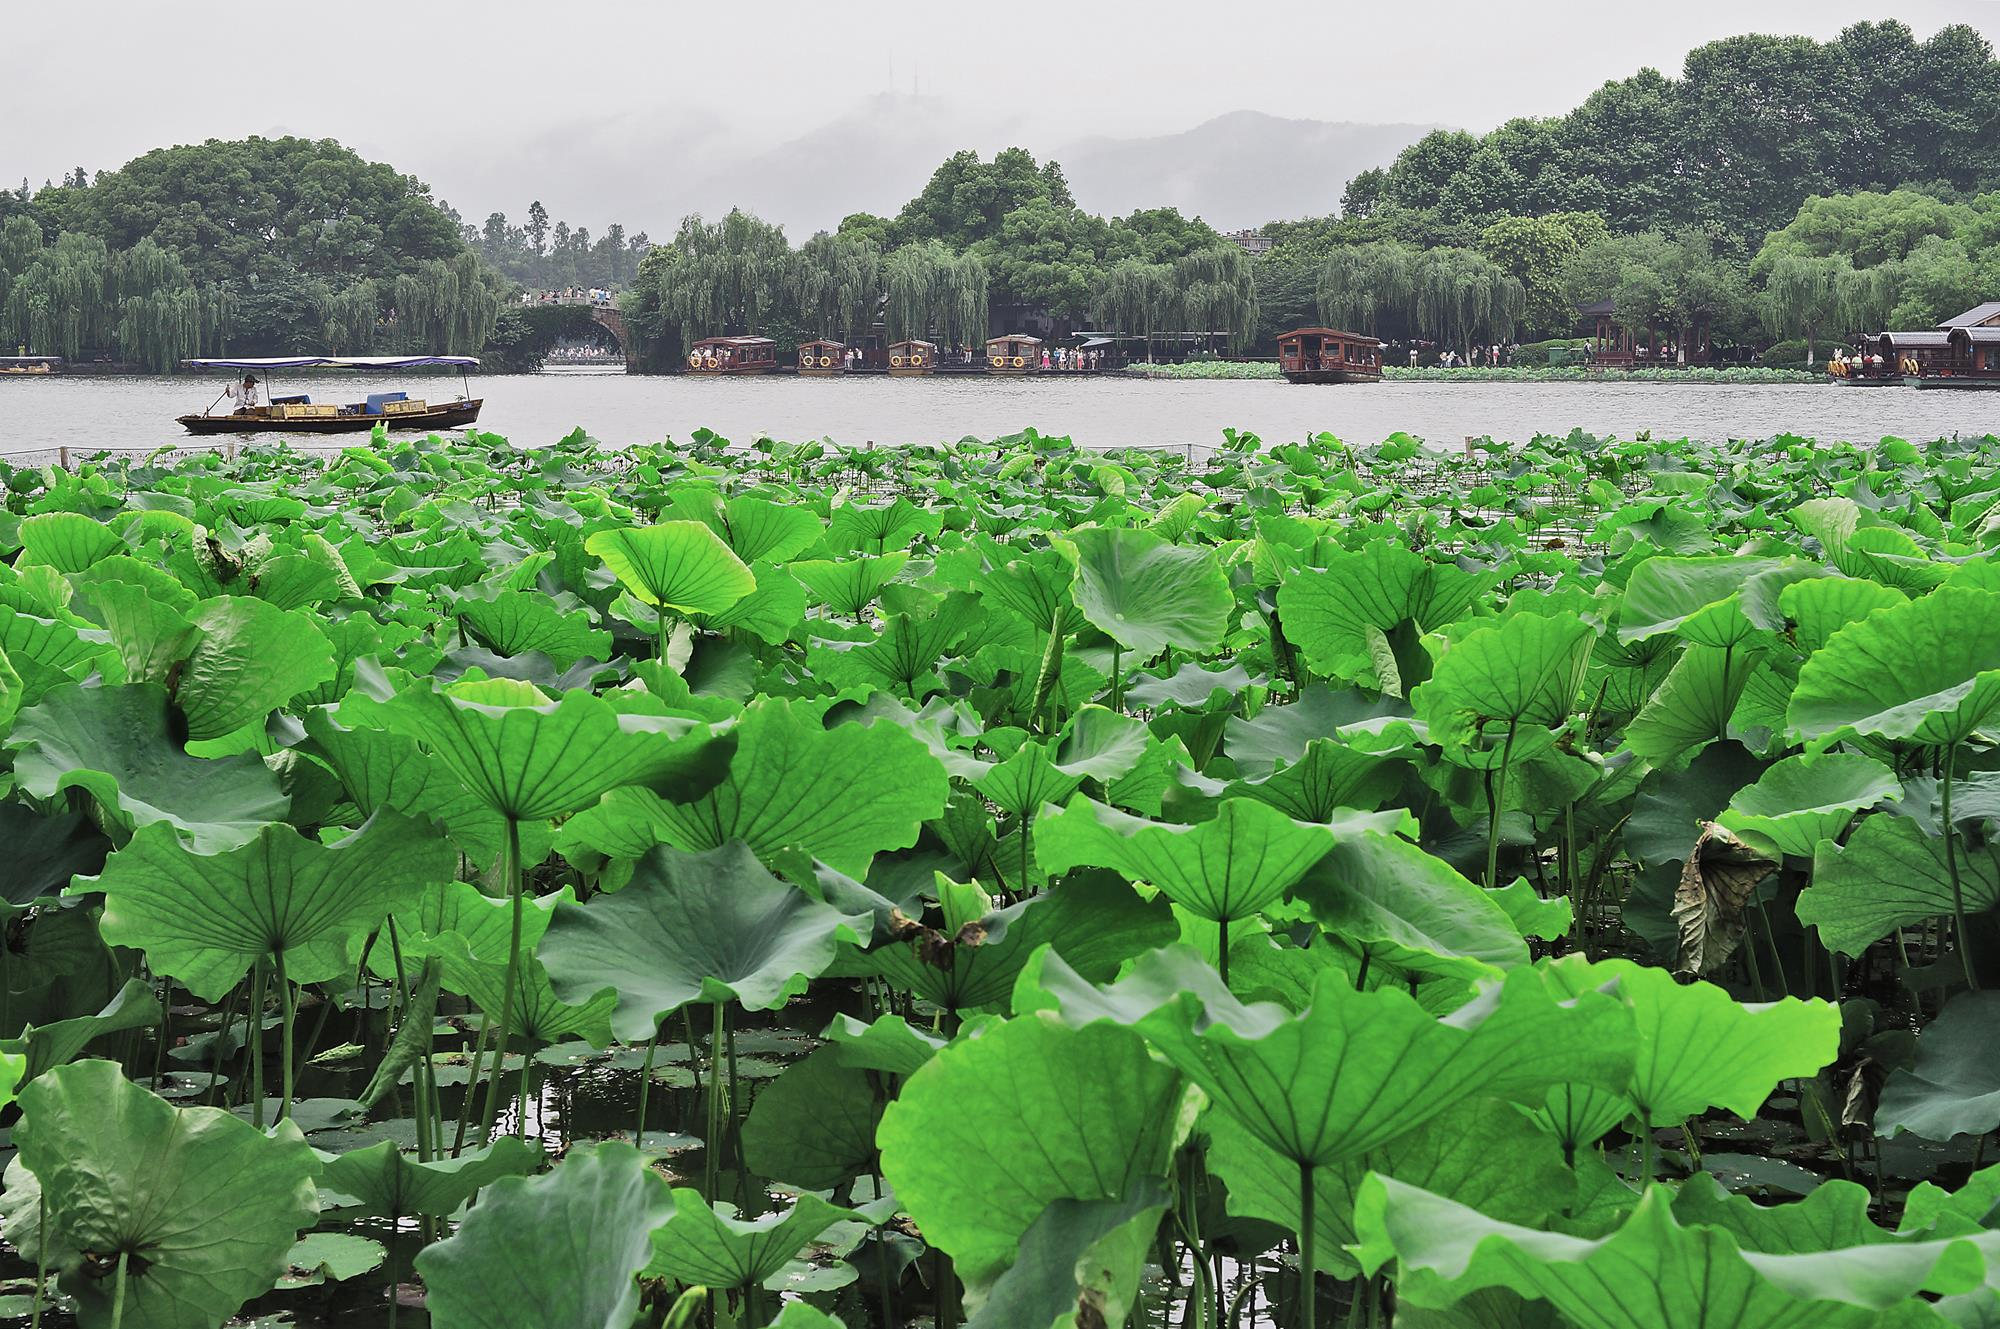 scenery at hangzhou west lake